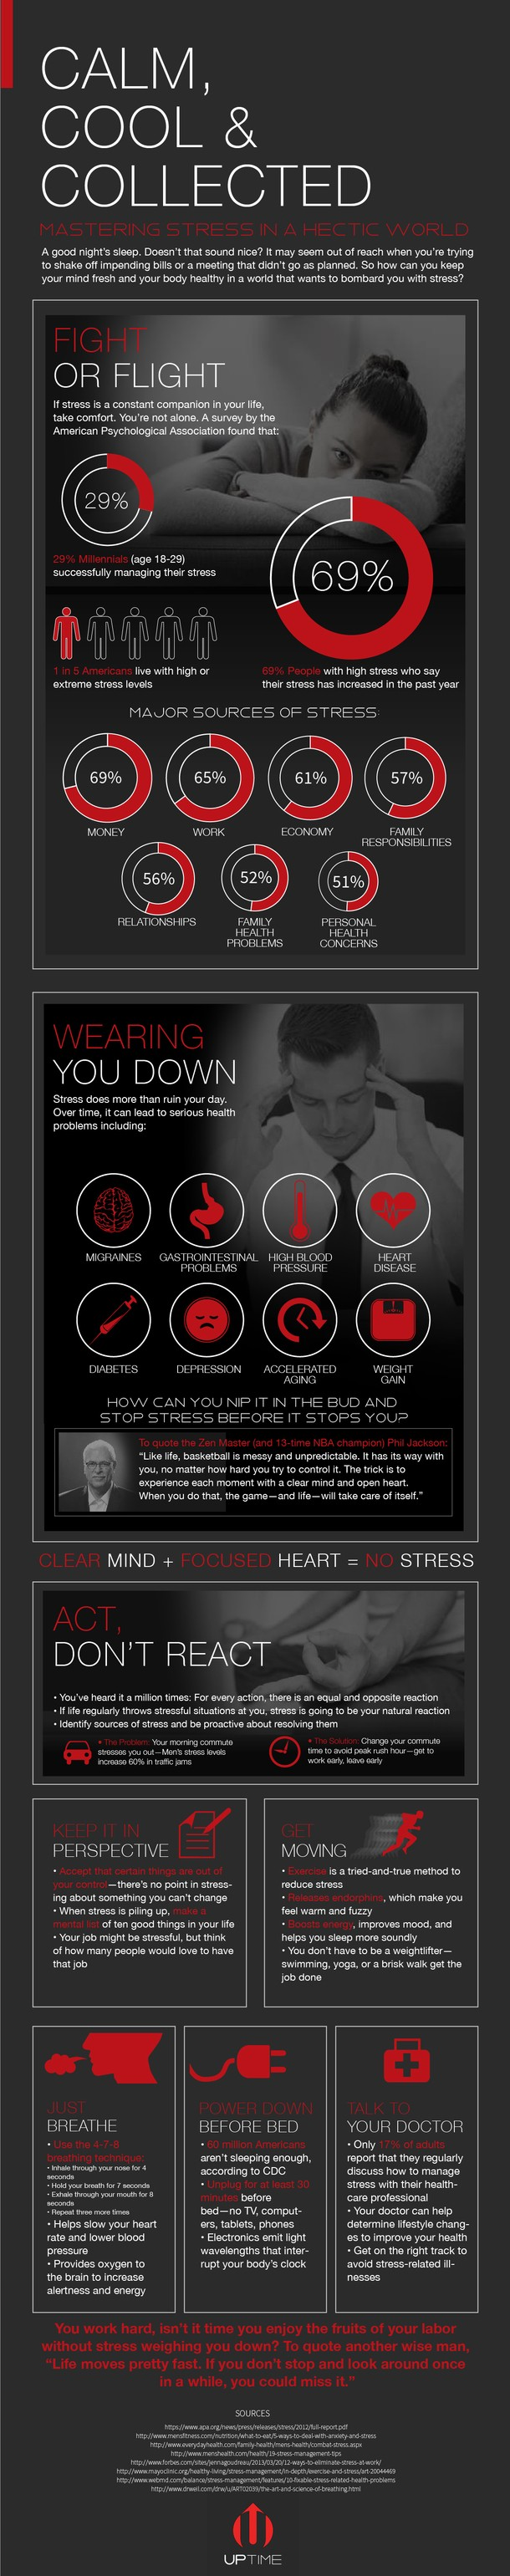 Stay Calm And Manage Your Stress